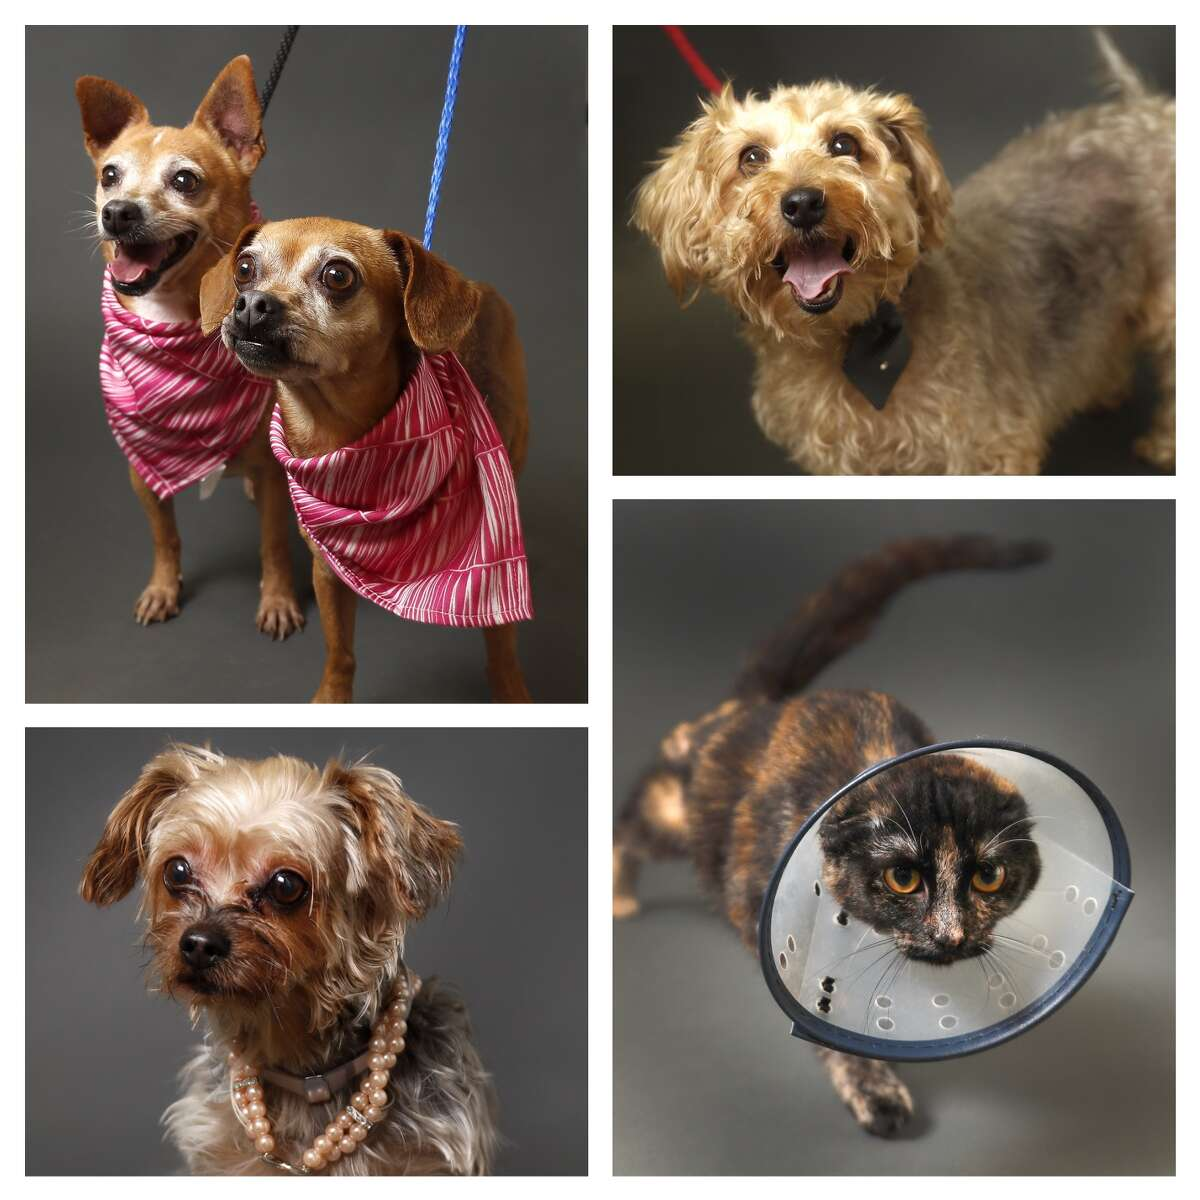 Animals available for adpotion from the Houston Humane Society. Photographed Wednesday, Nov. 7, 2018, in Houston.